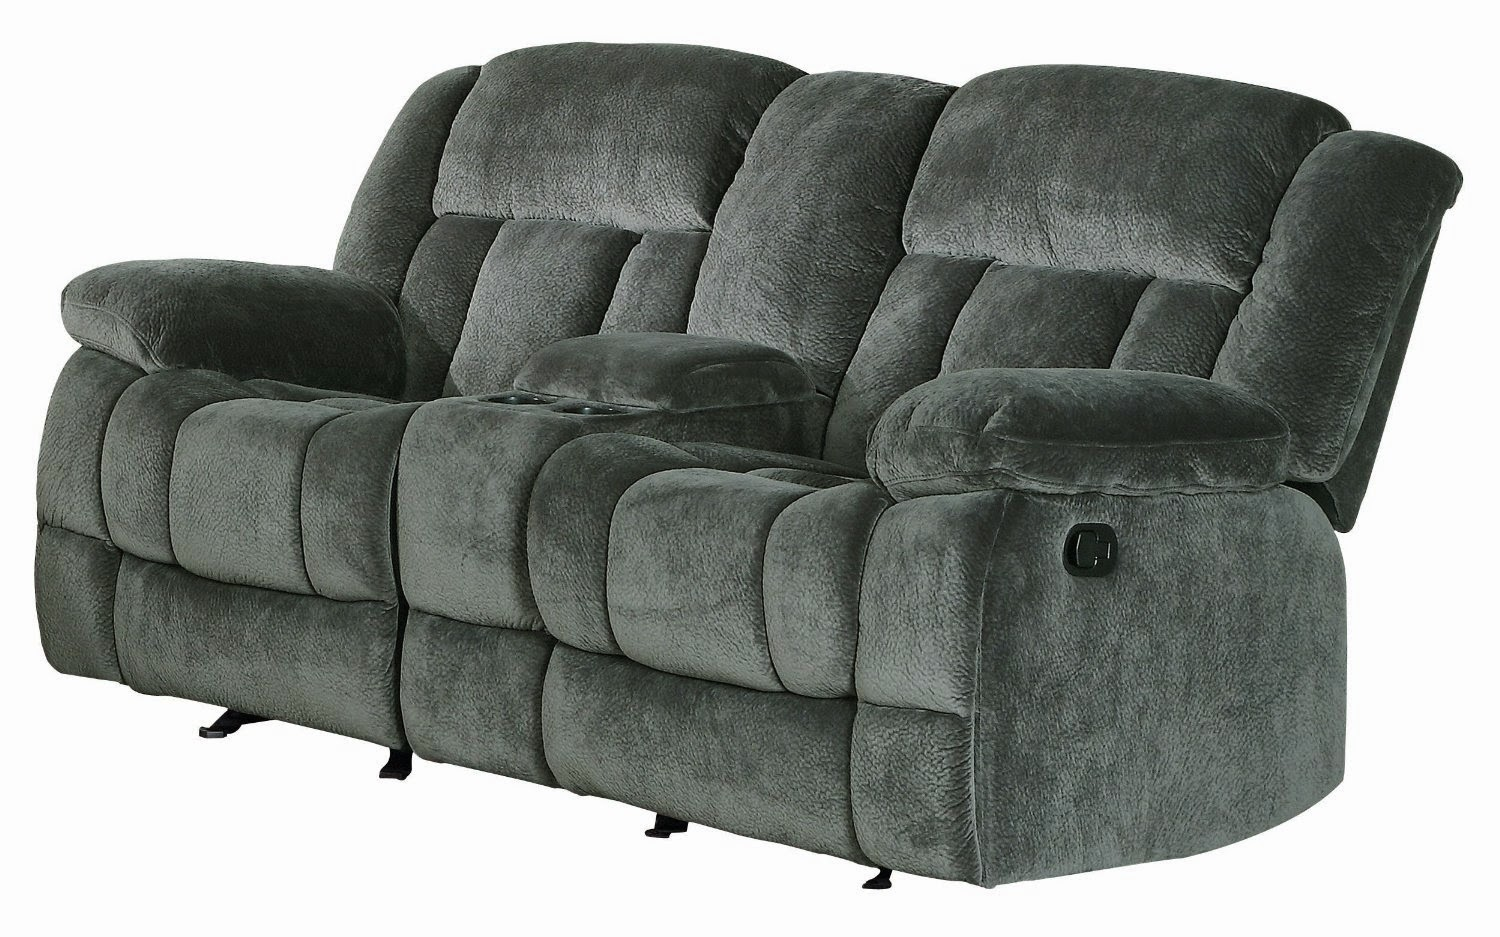 Homelegance Gray Fabric Recliner Sofas Sale  sc 1 st  Cheap Reclining Sofas Sale - blogger : black fabric reclining sofa - islam-shia.org